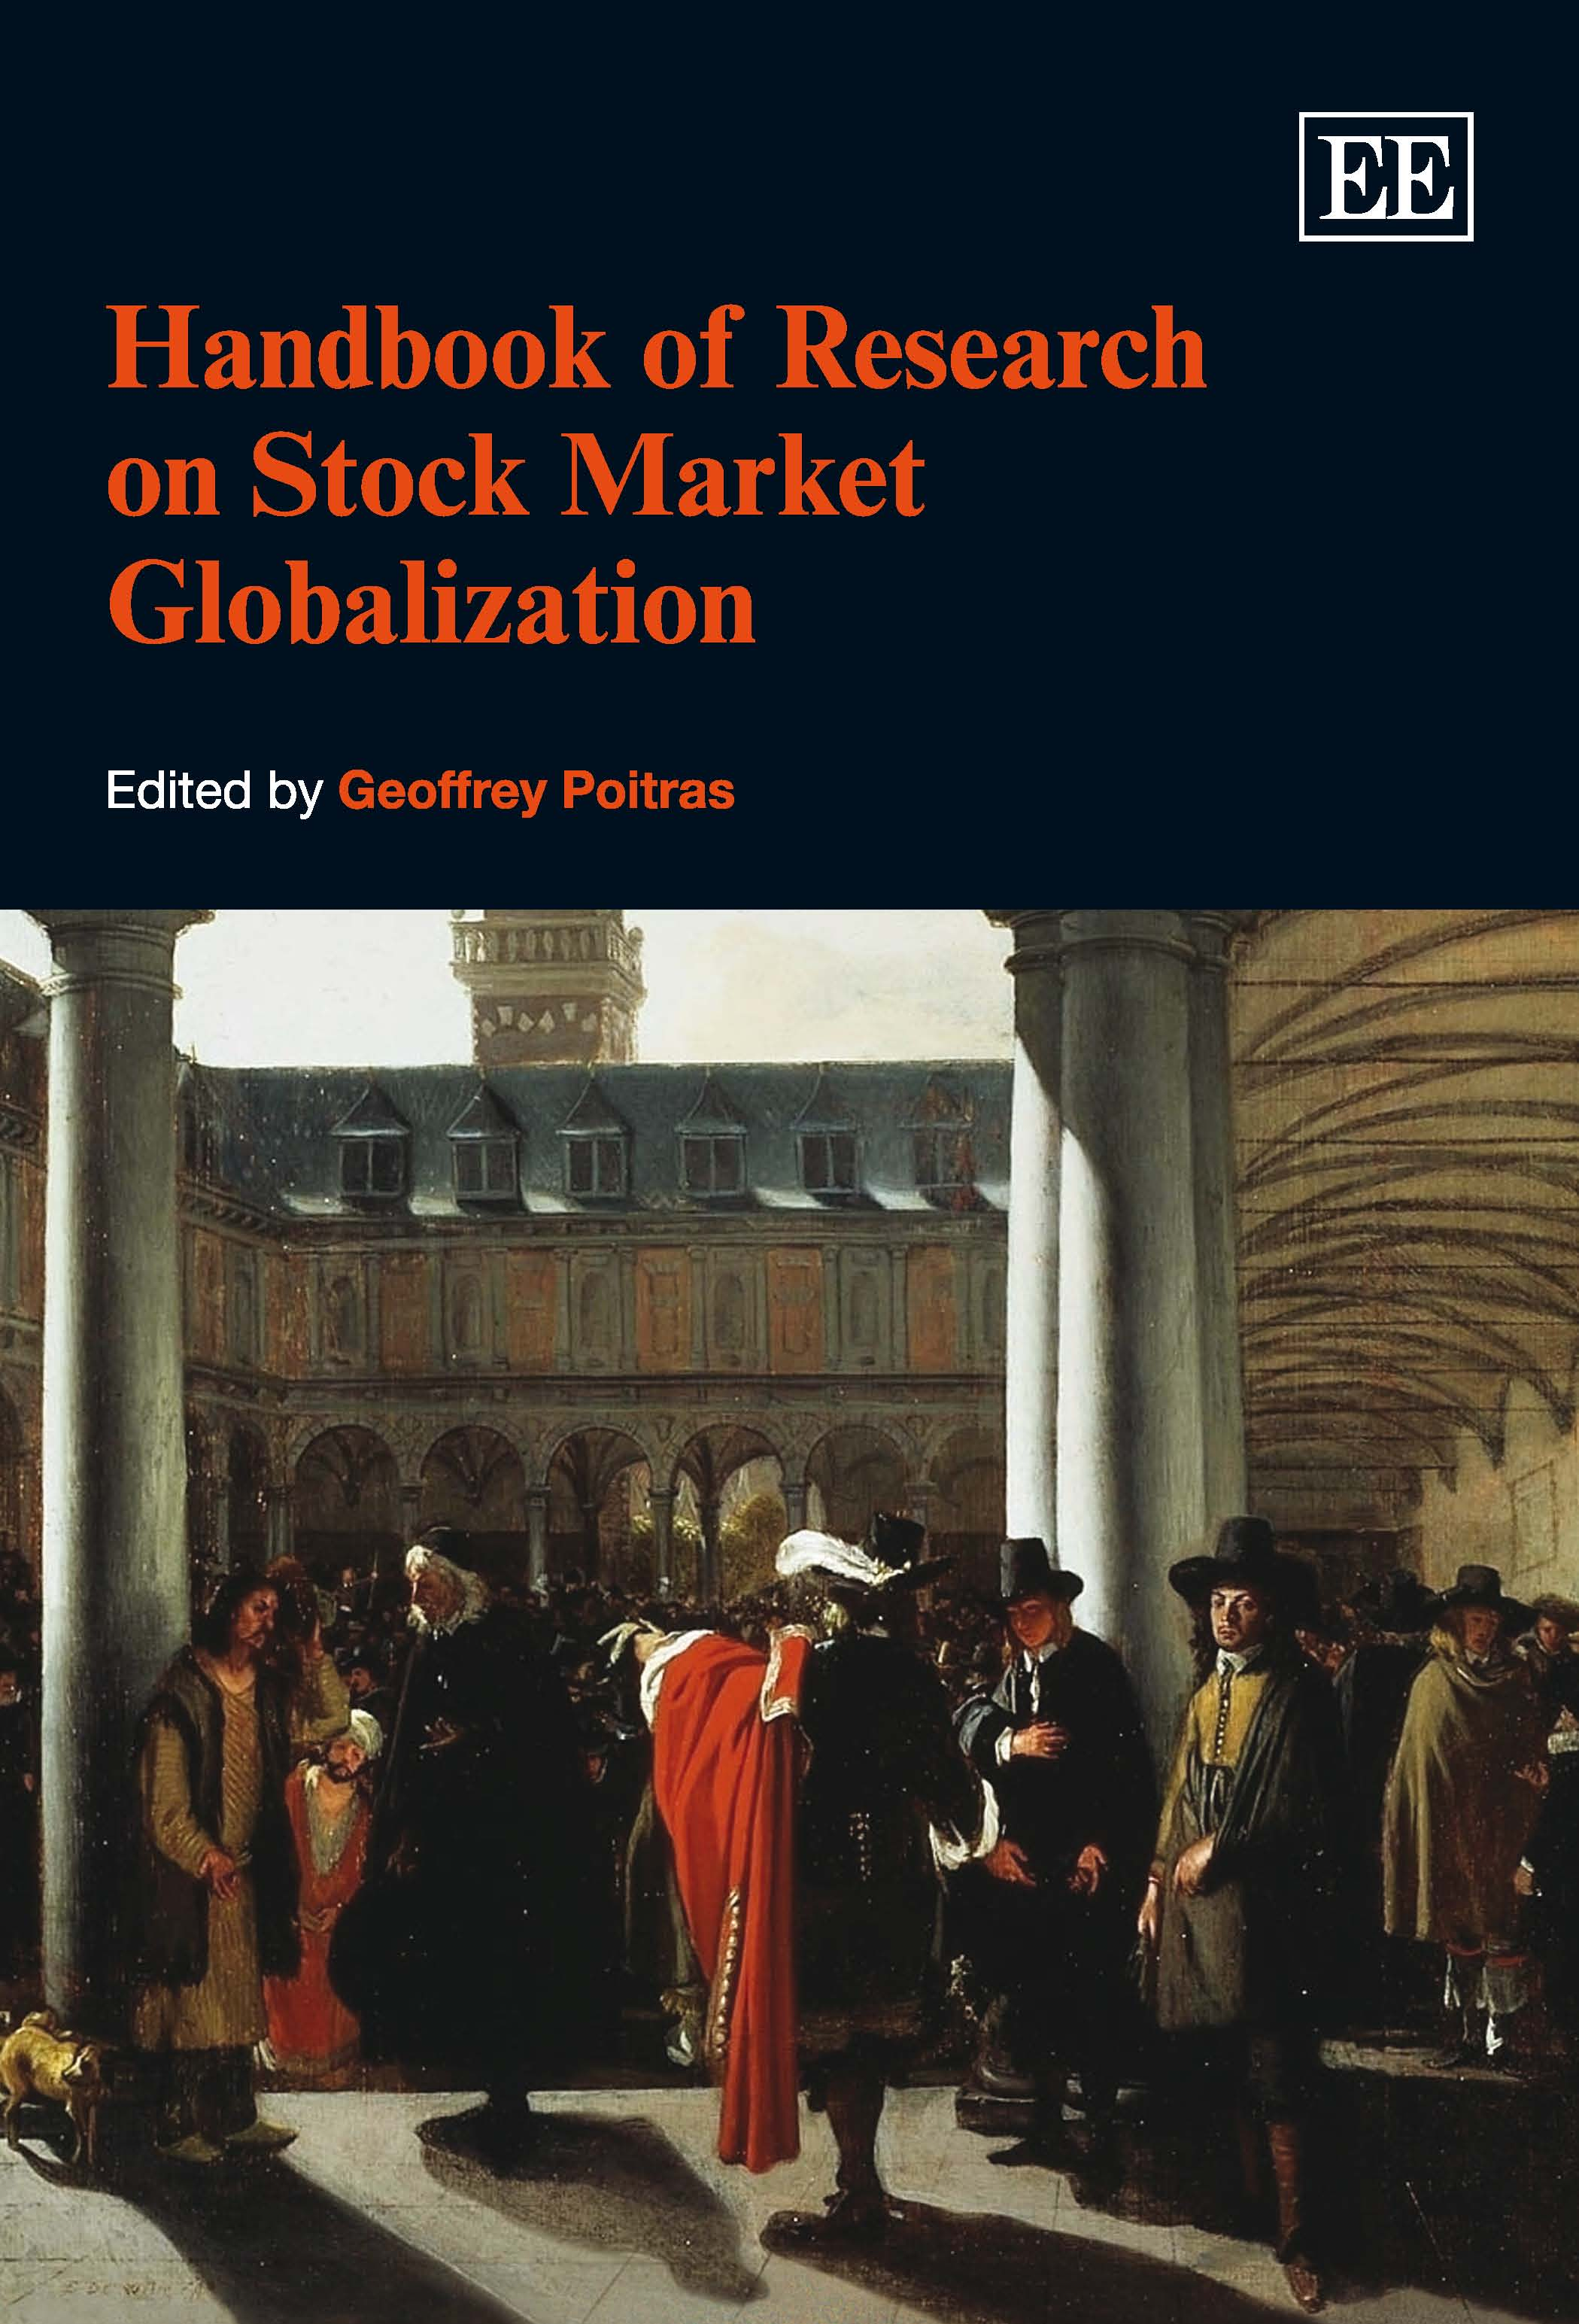 Handbook of Research on Stock Market Globalization